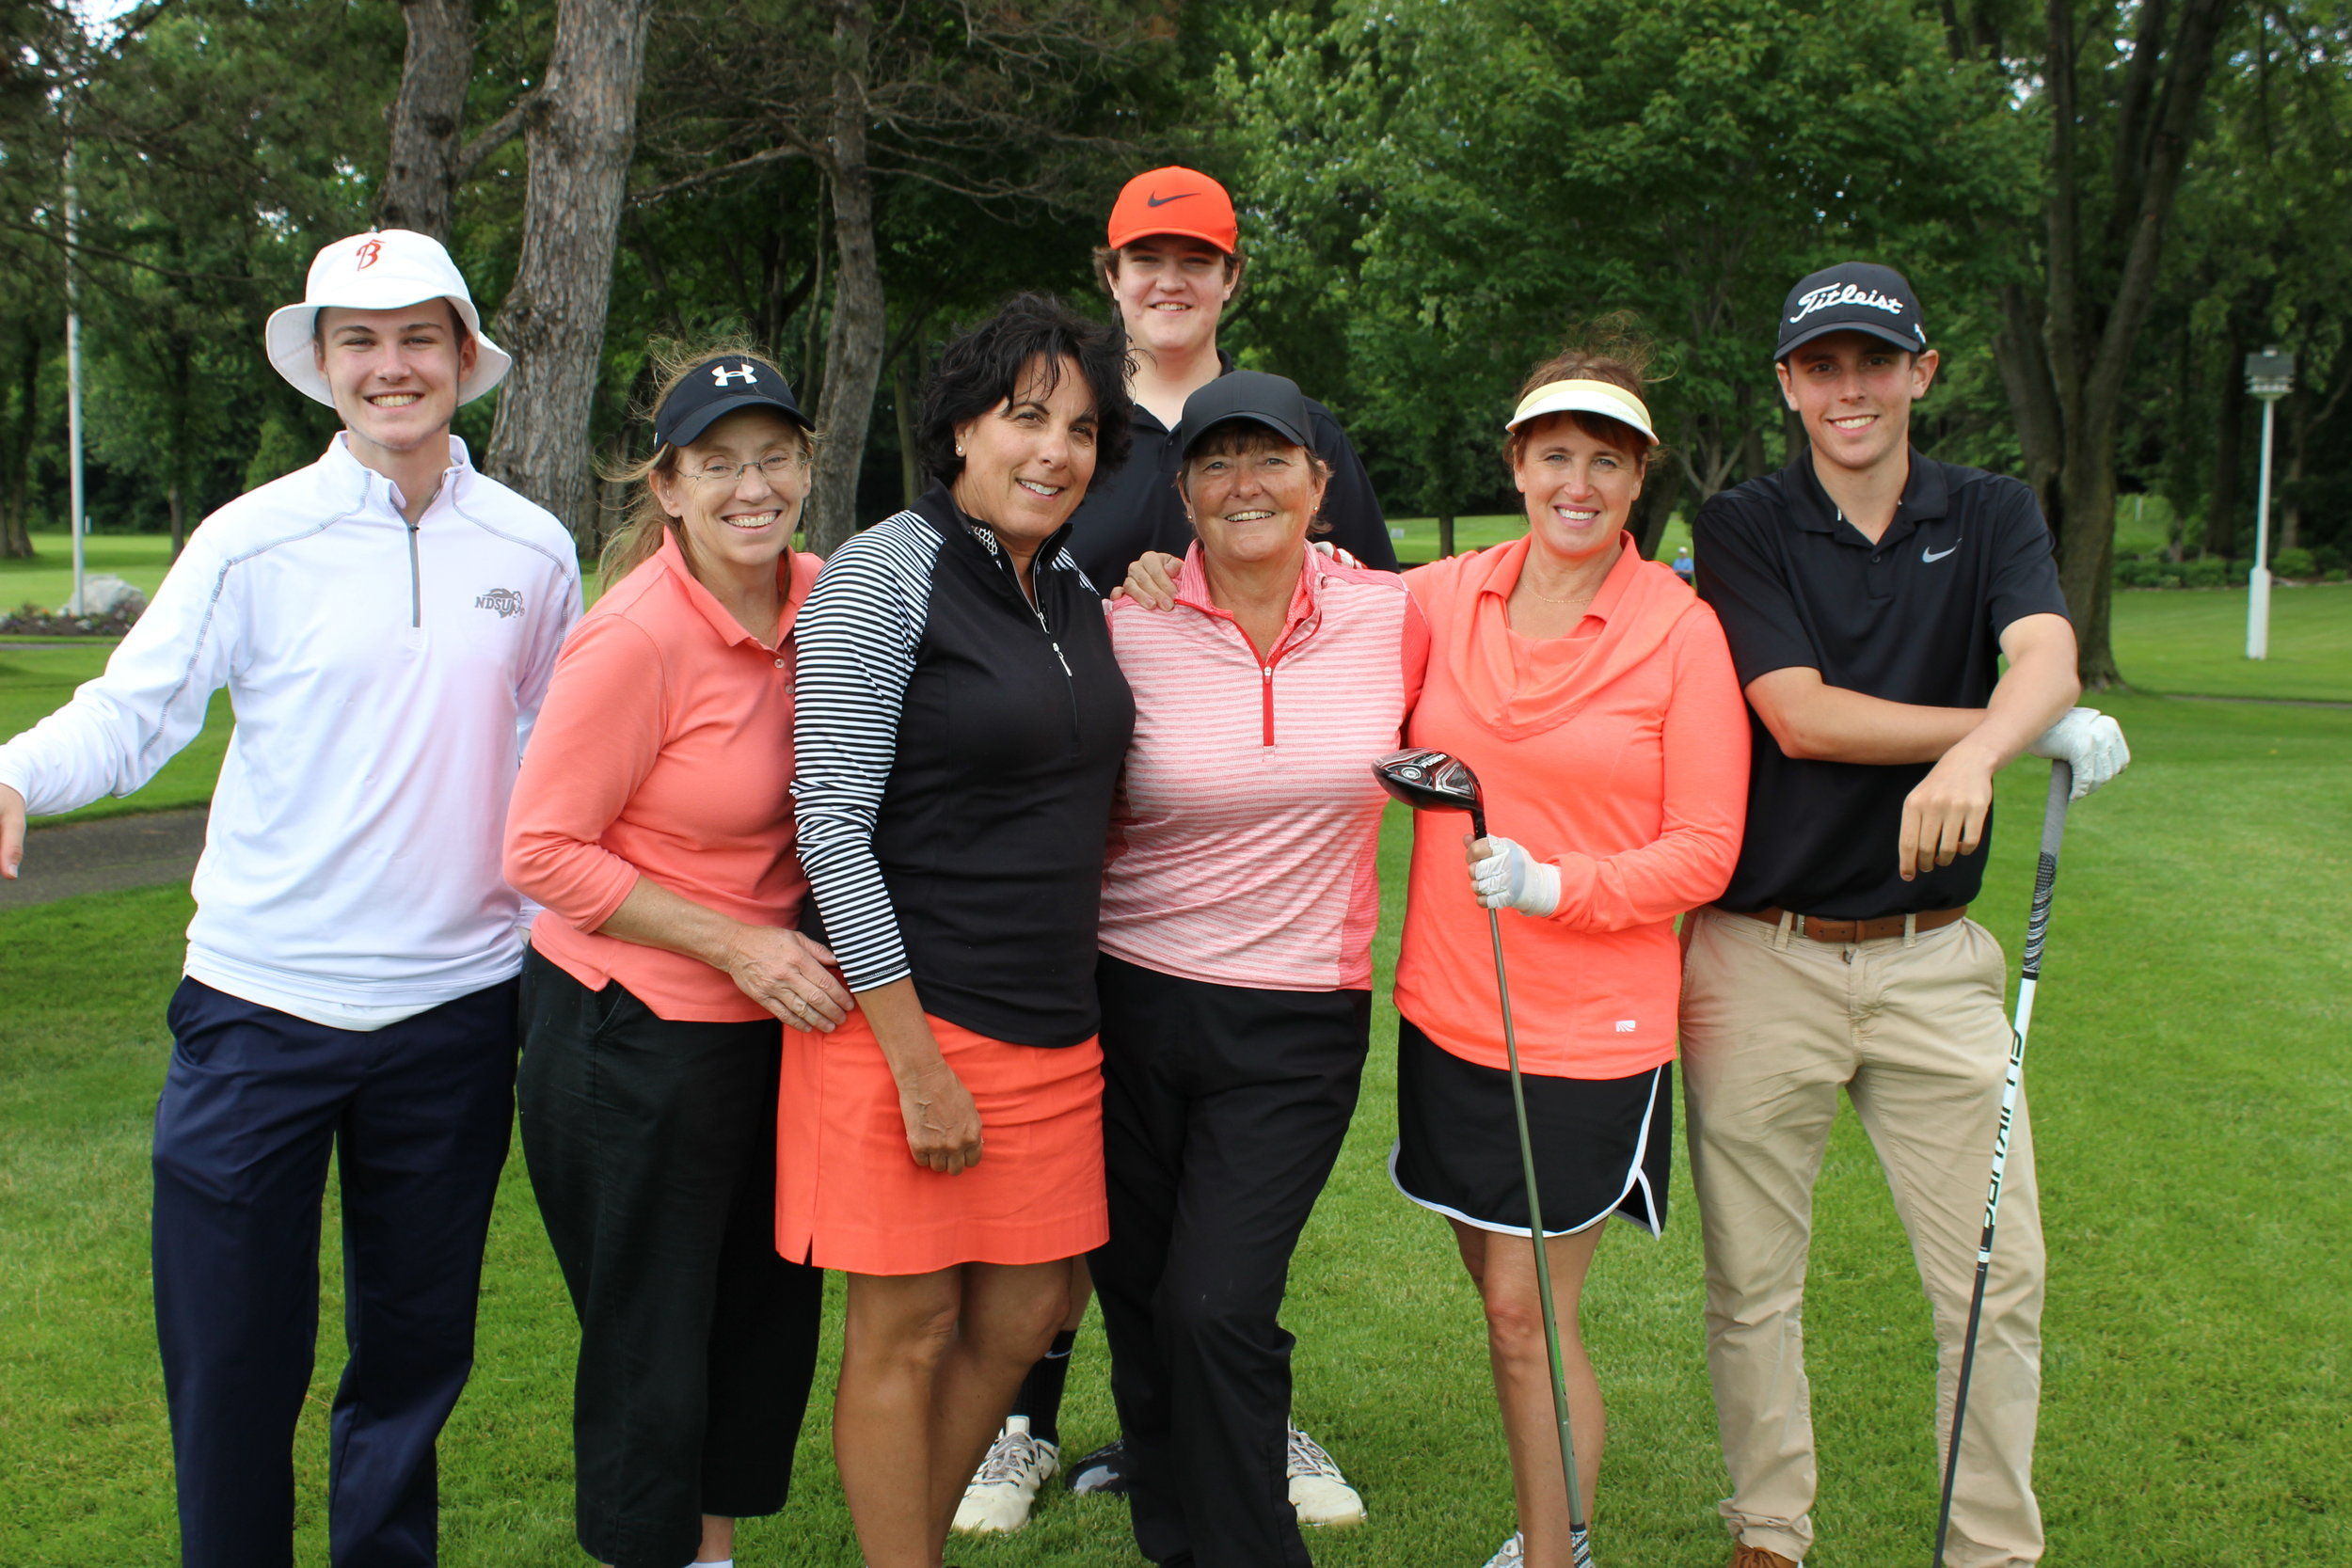 14A Mary Cox, Cathy Poechmann, Sue Ryan, Beth Pilacinski w boys golf players.JPG